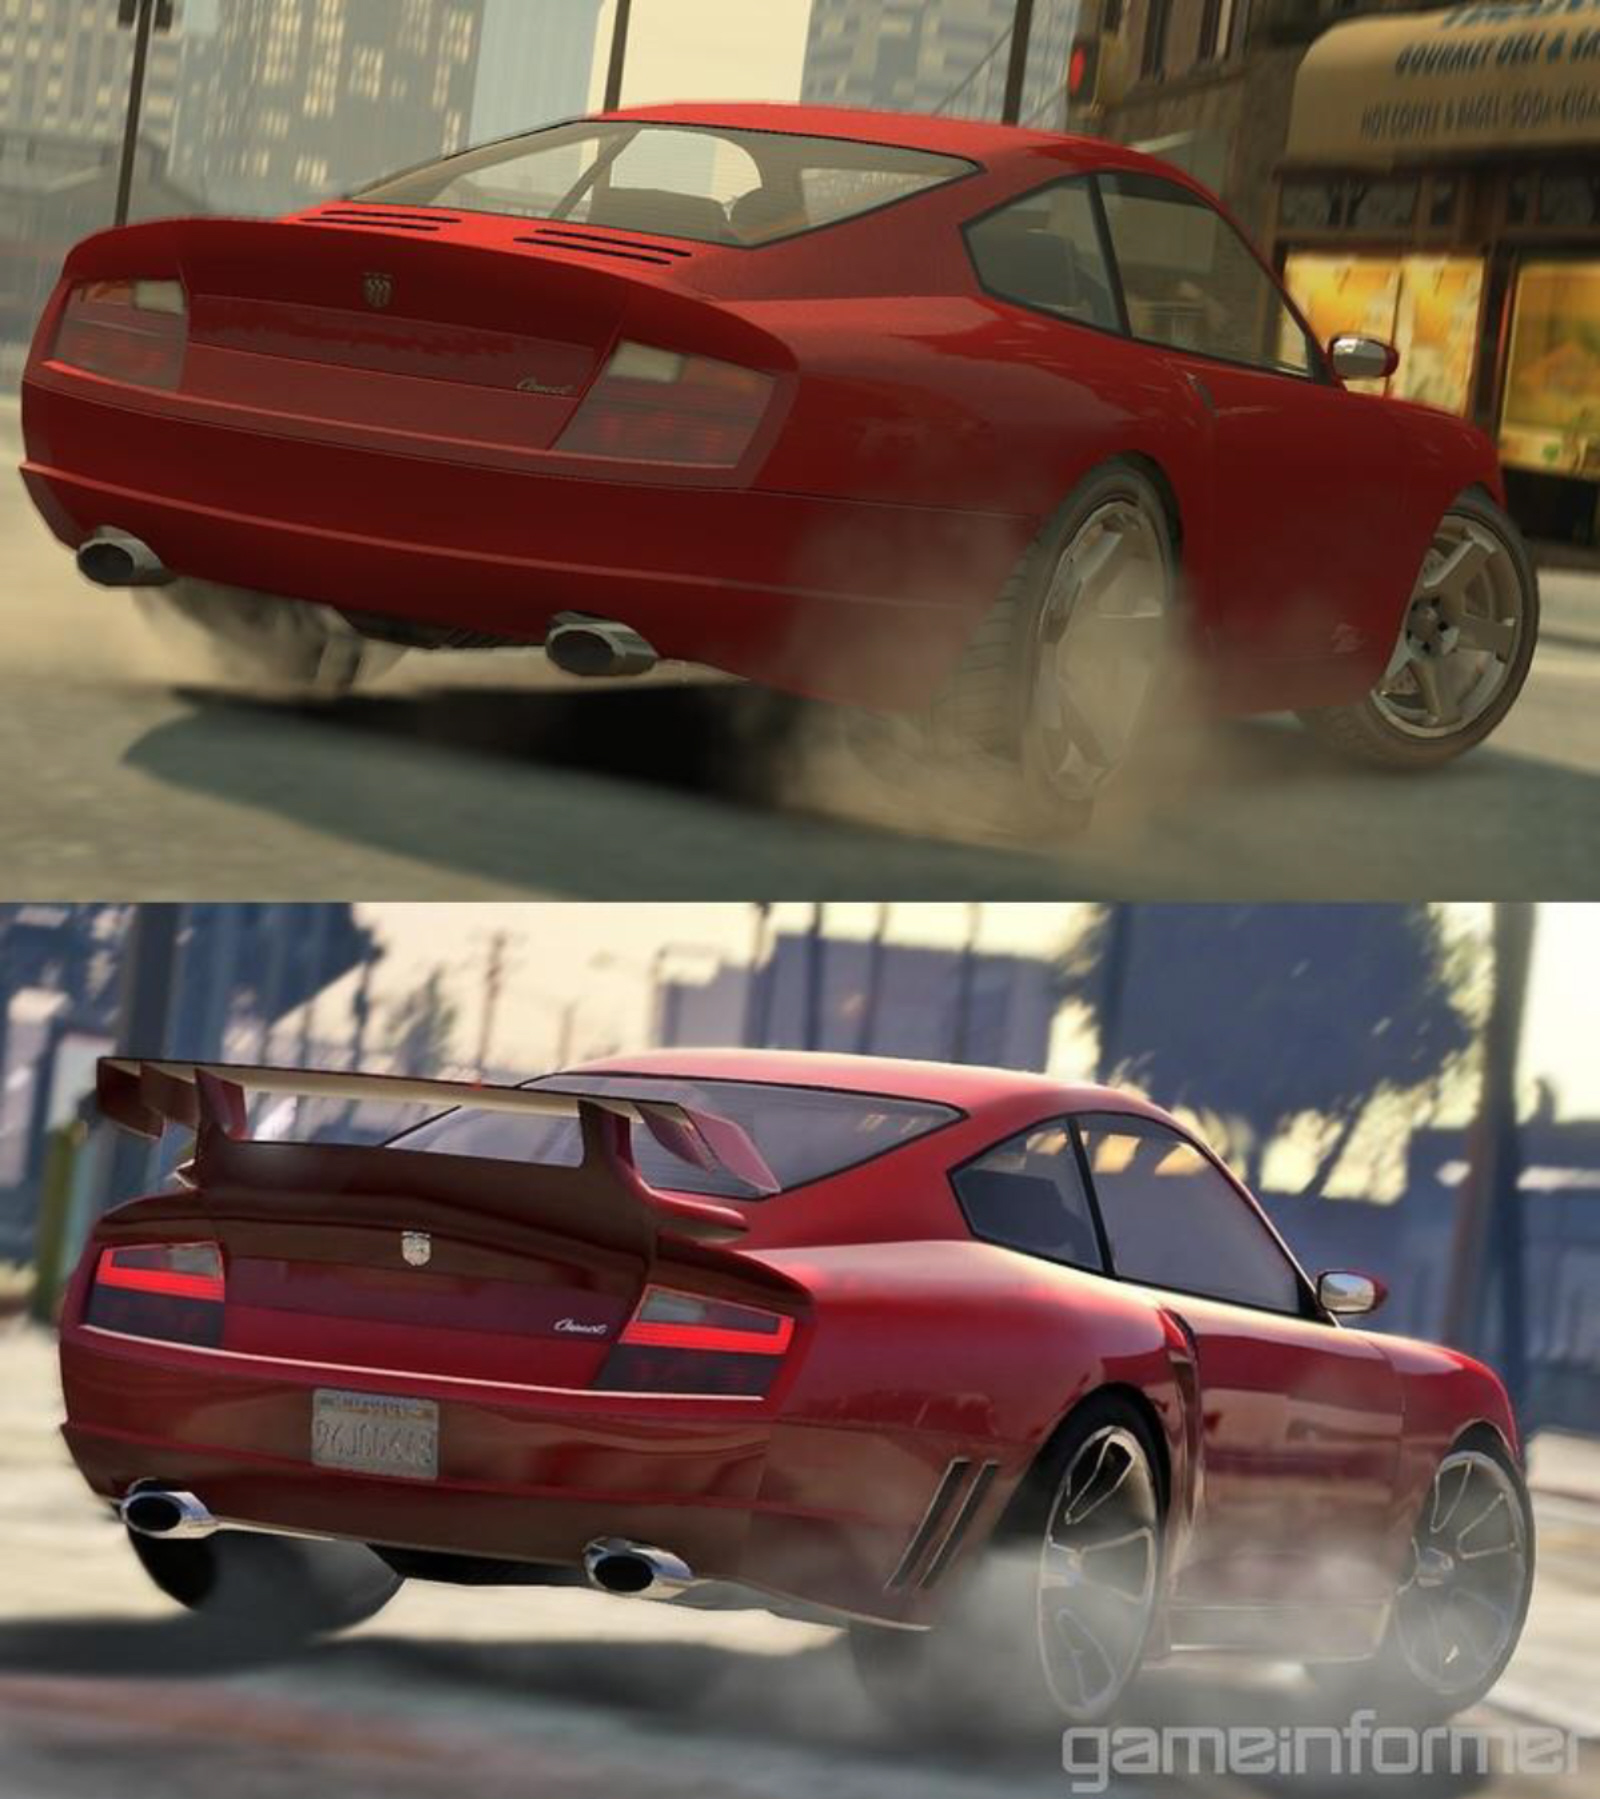 ... Photo of the Day – GTA IV Compared To GTA V Red Car Screenshot